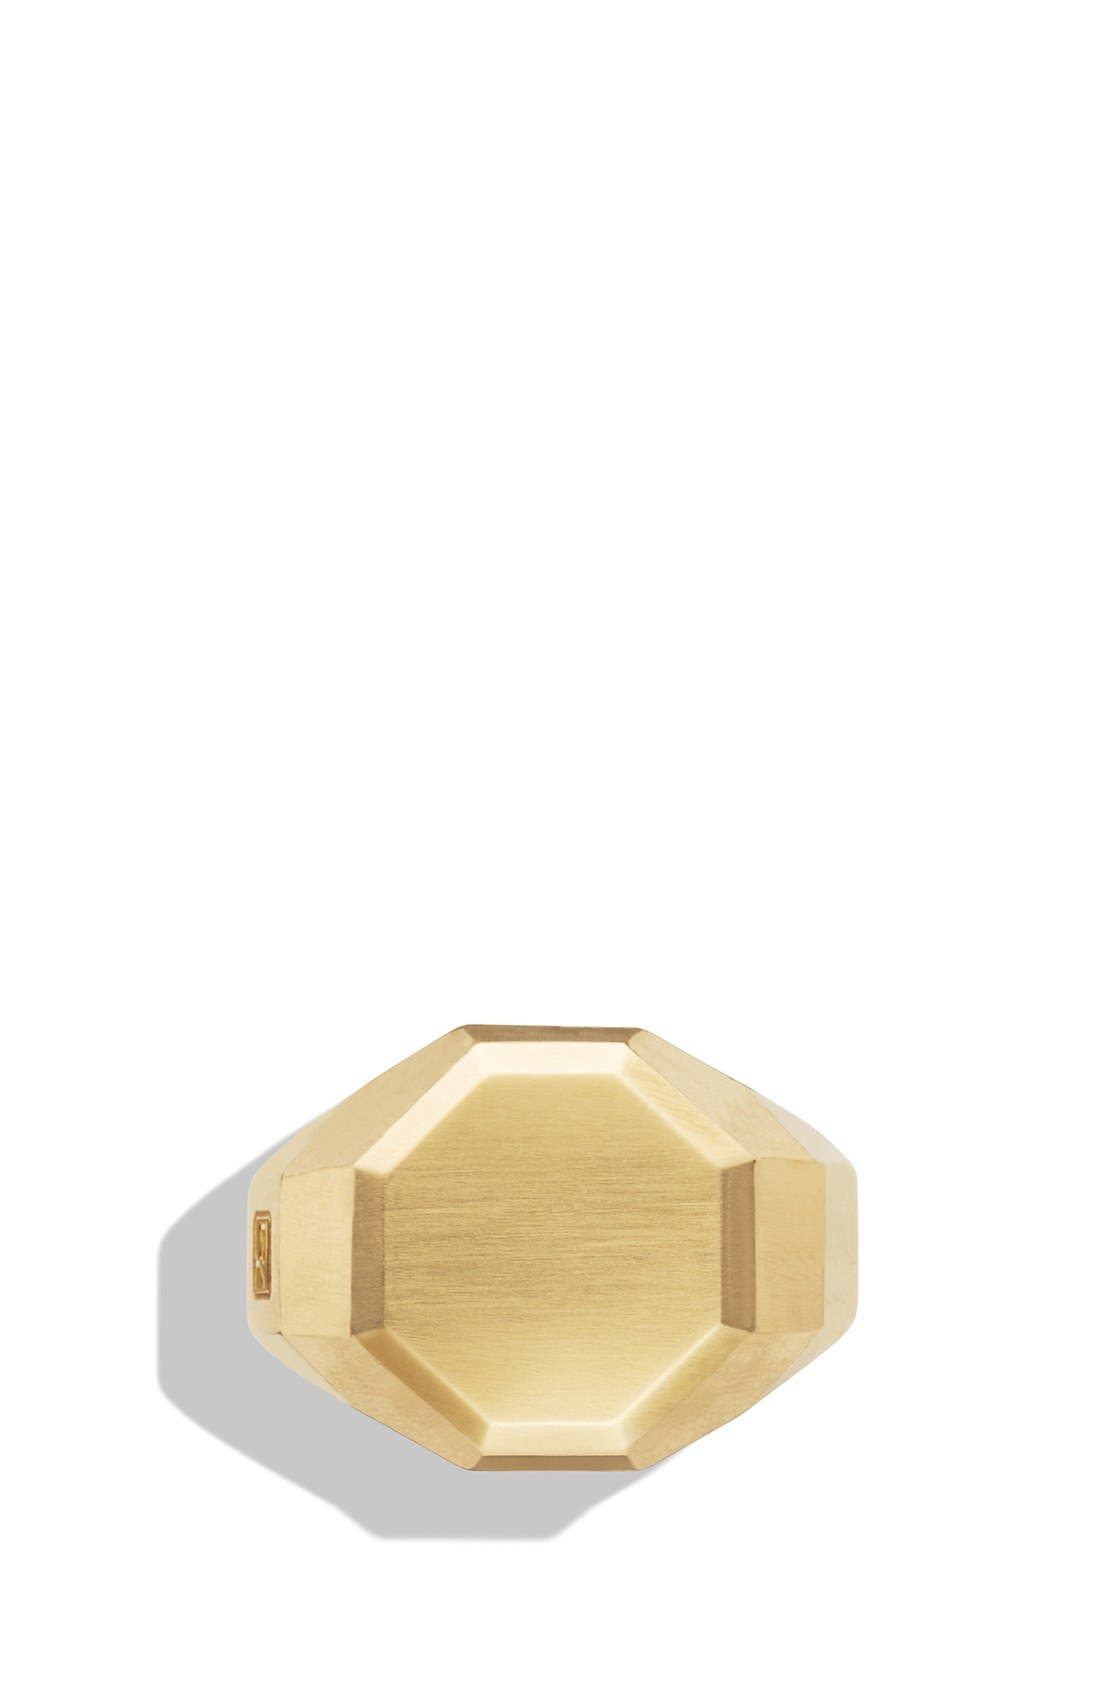 Alternate Image 2  - David Yurman 'Faceted' Signet Ring with 18k Gold